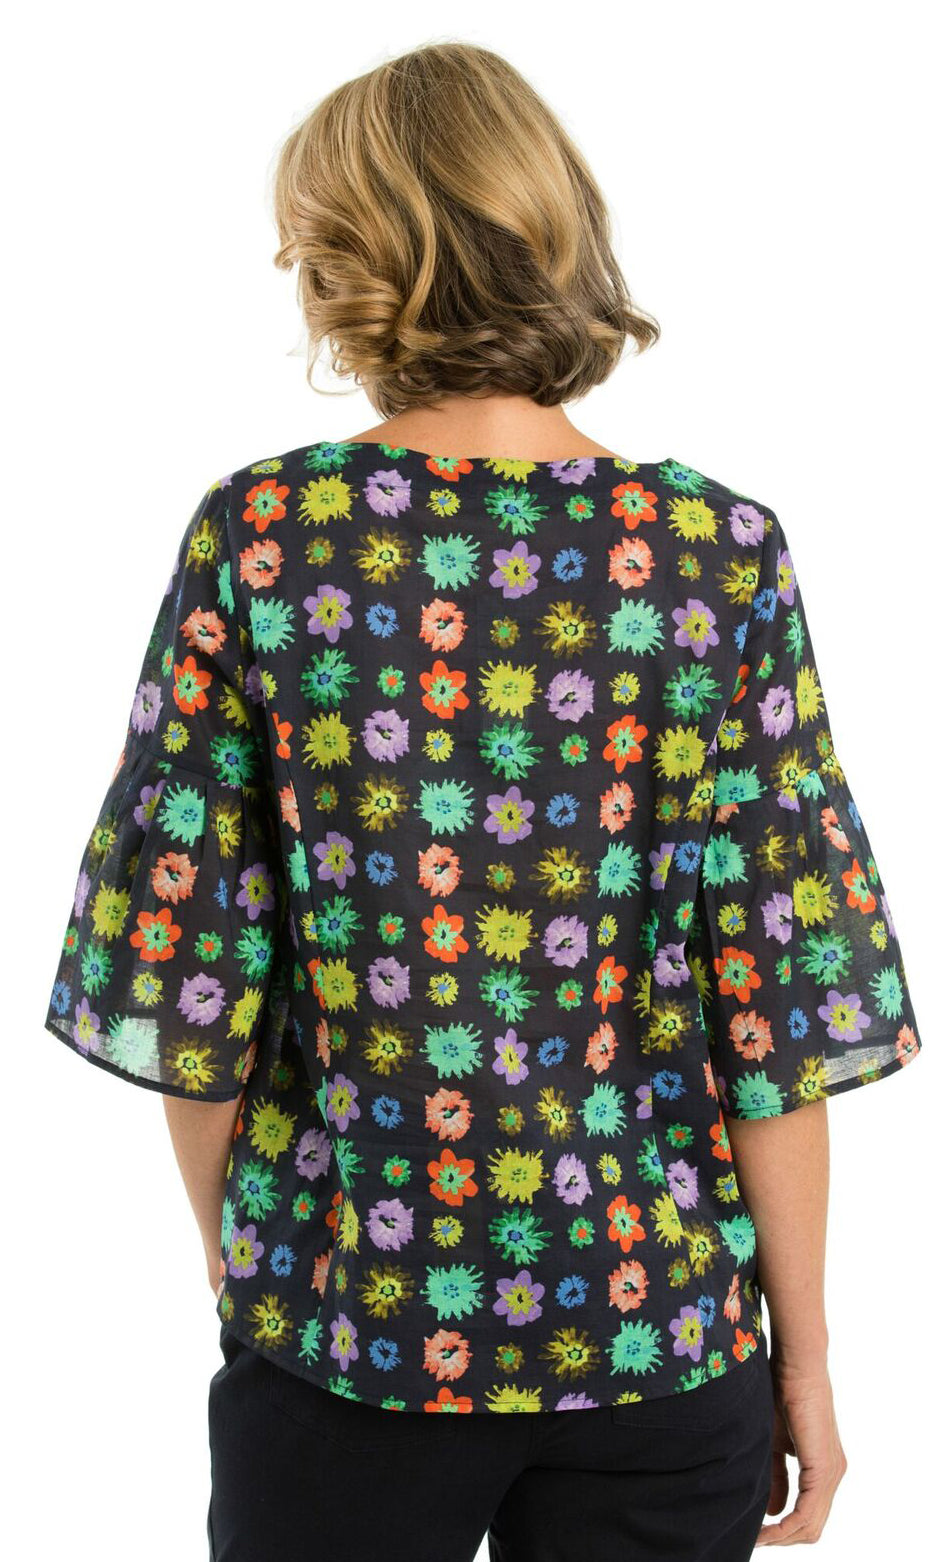 Cotton Blouse Flower Print, Sizes 10 - 18